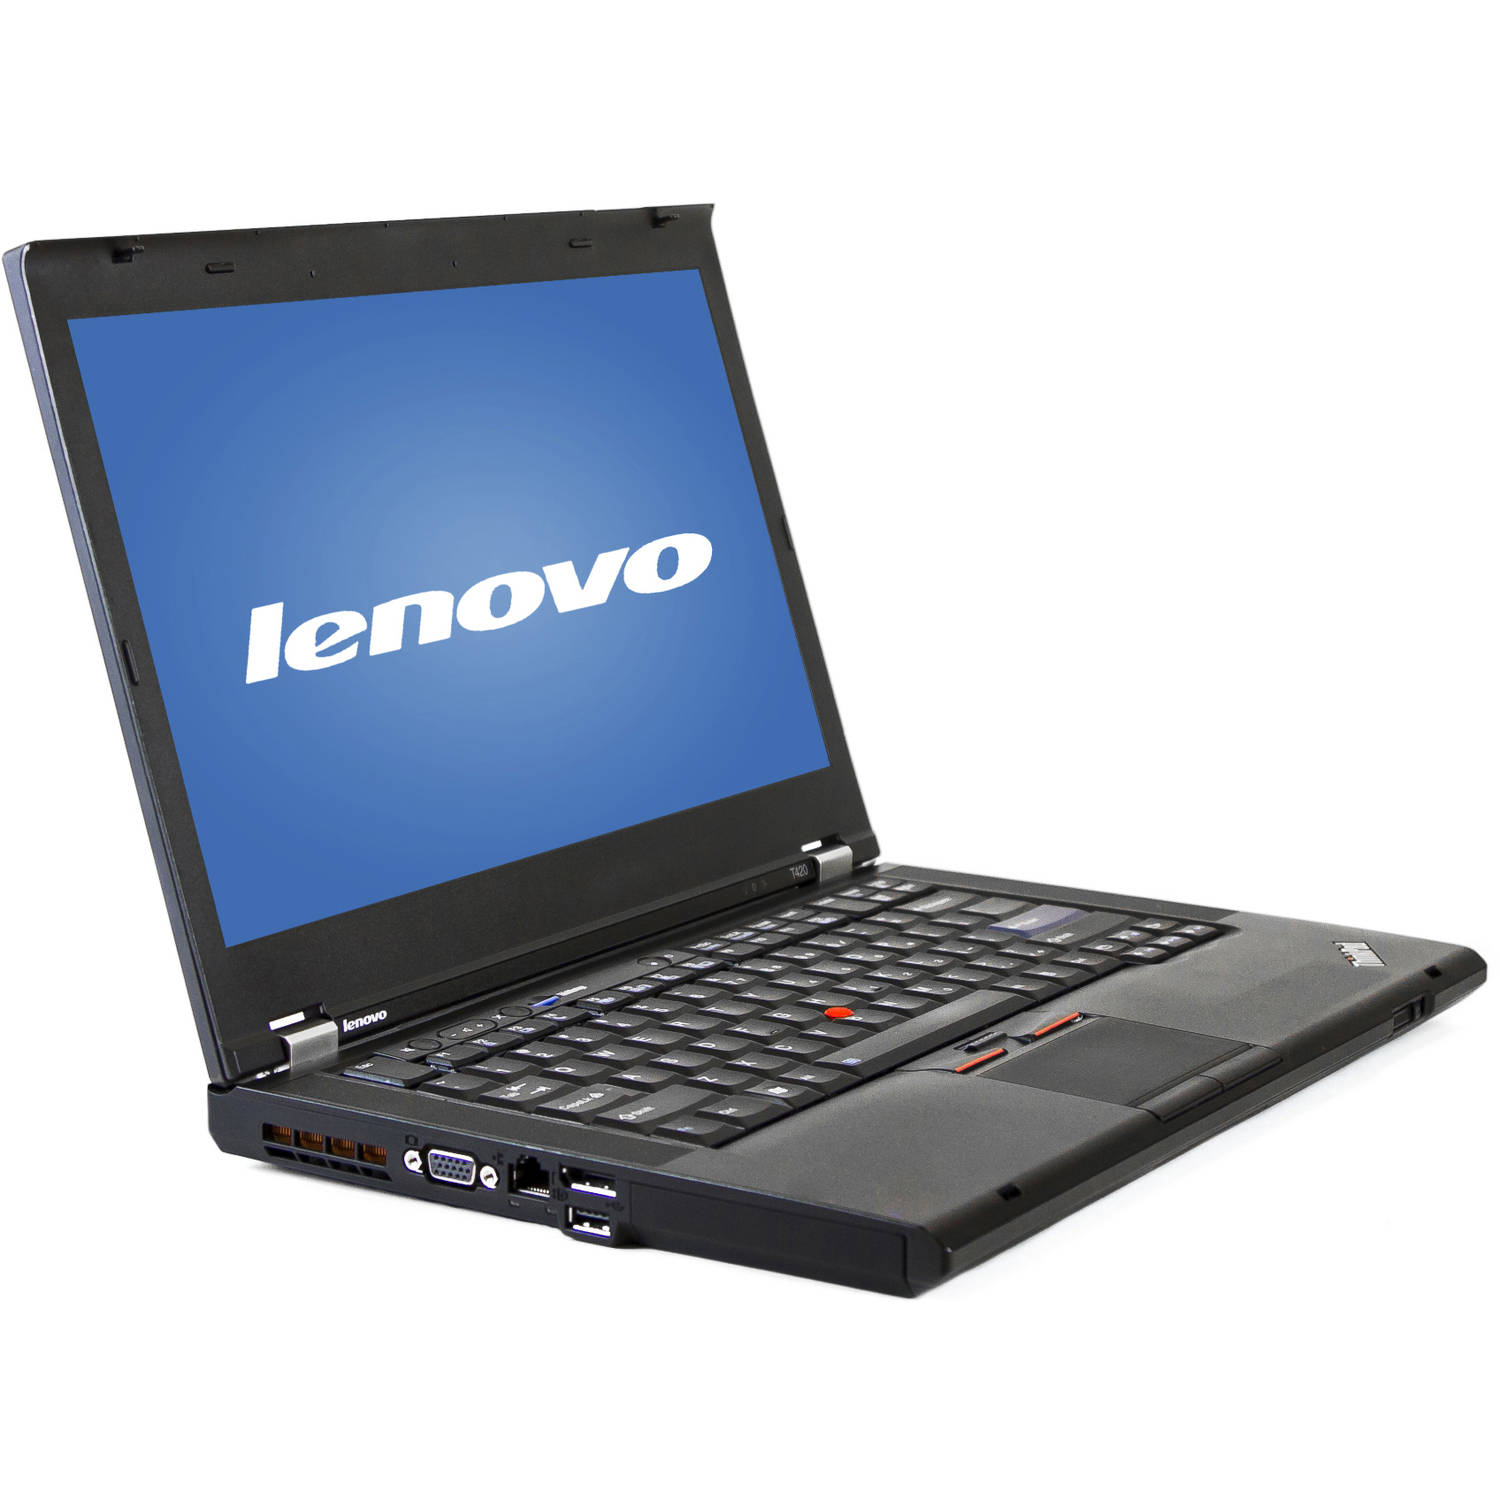 "Refurbished Lenovo 14.1"" T420 Laptop PC with Intel Core i5 Processor, 4GB Memory, 128GB Solid State Drive and Windows 10 Pro"